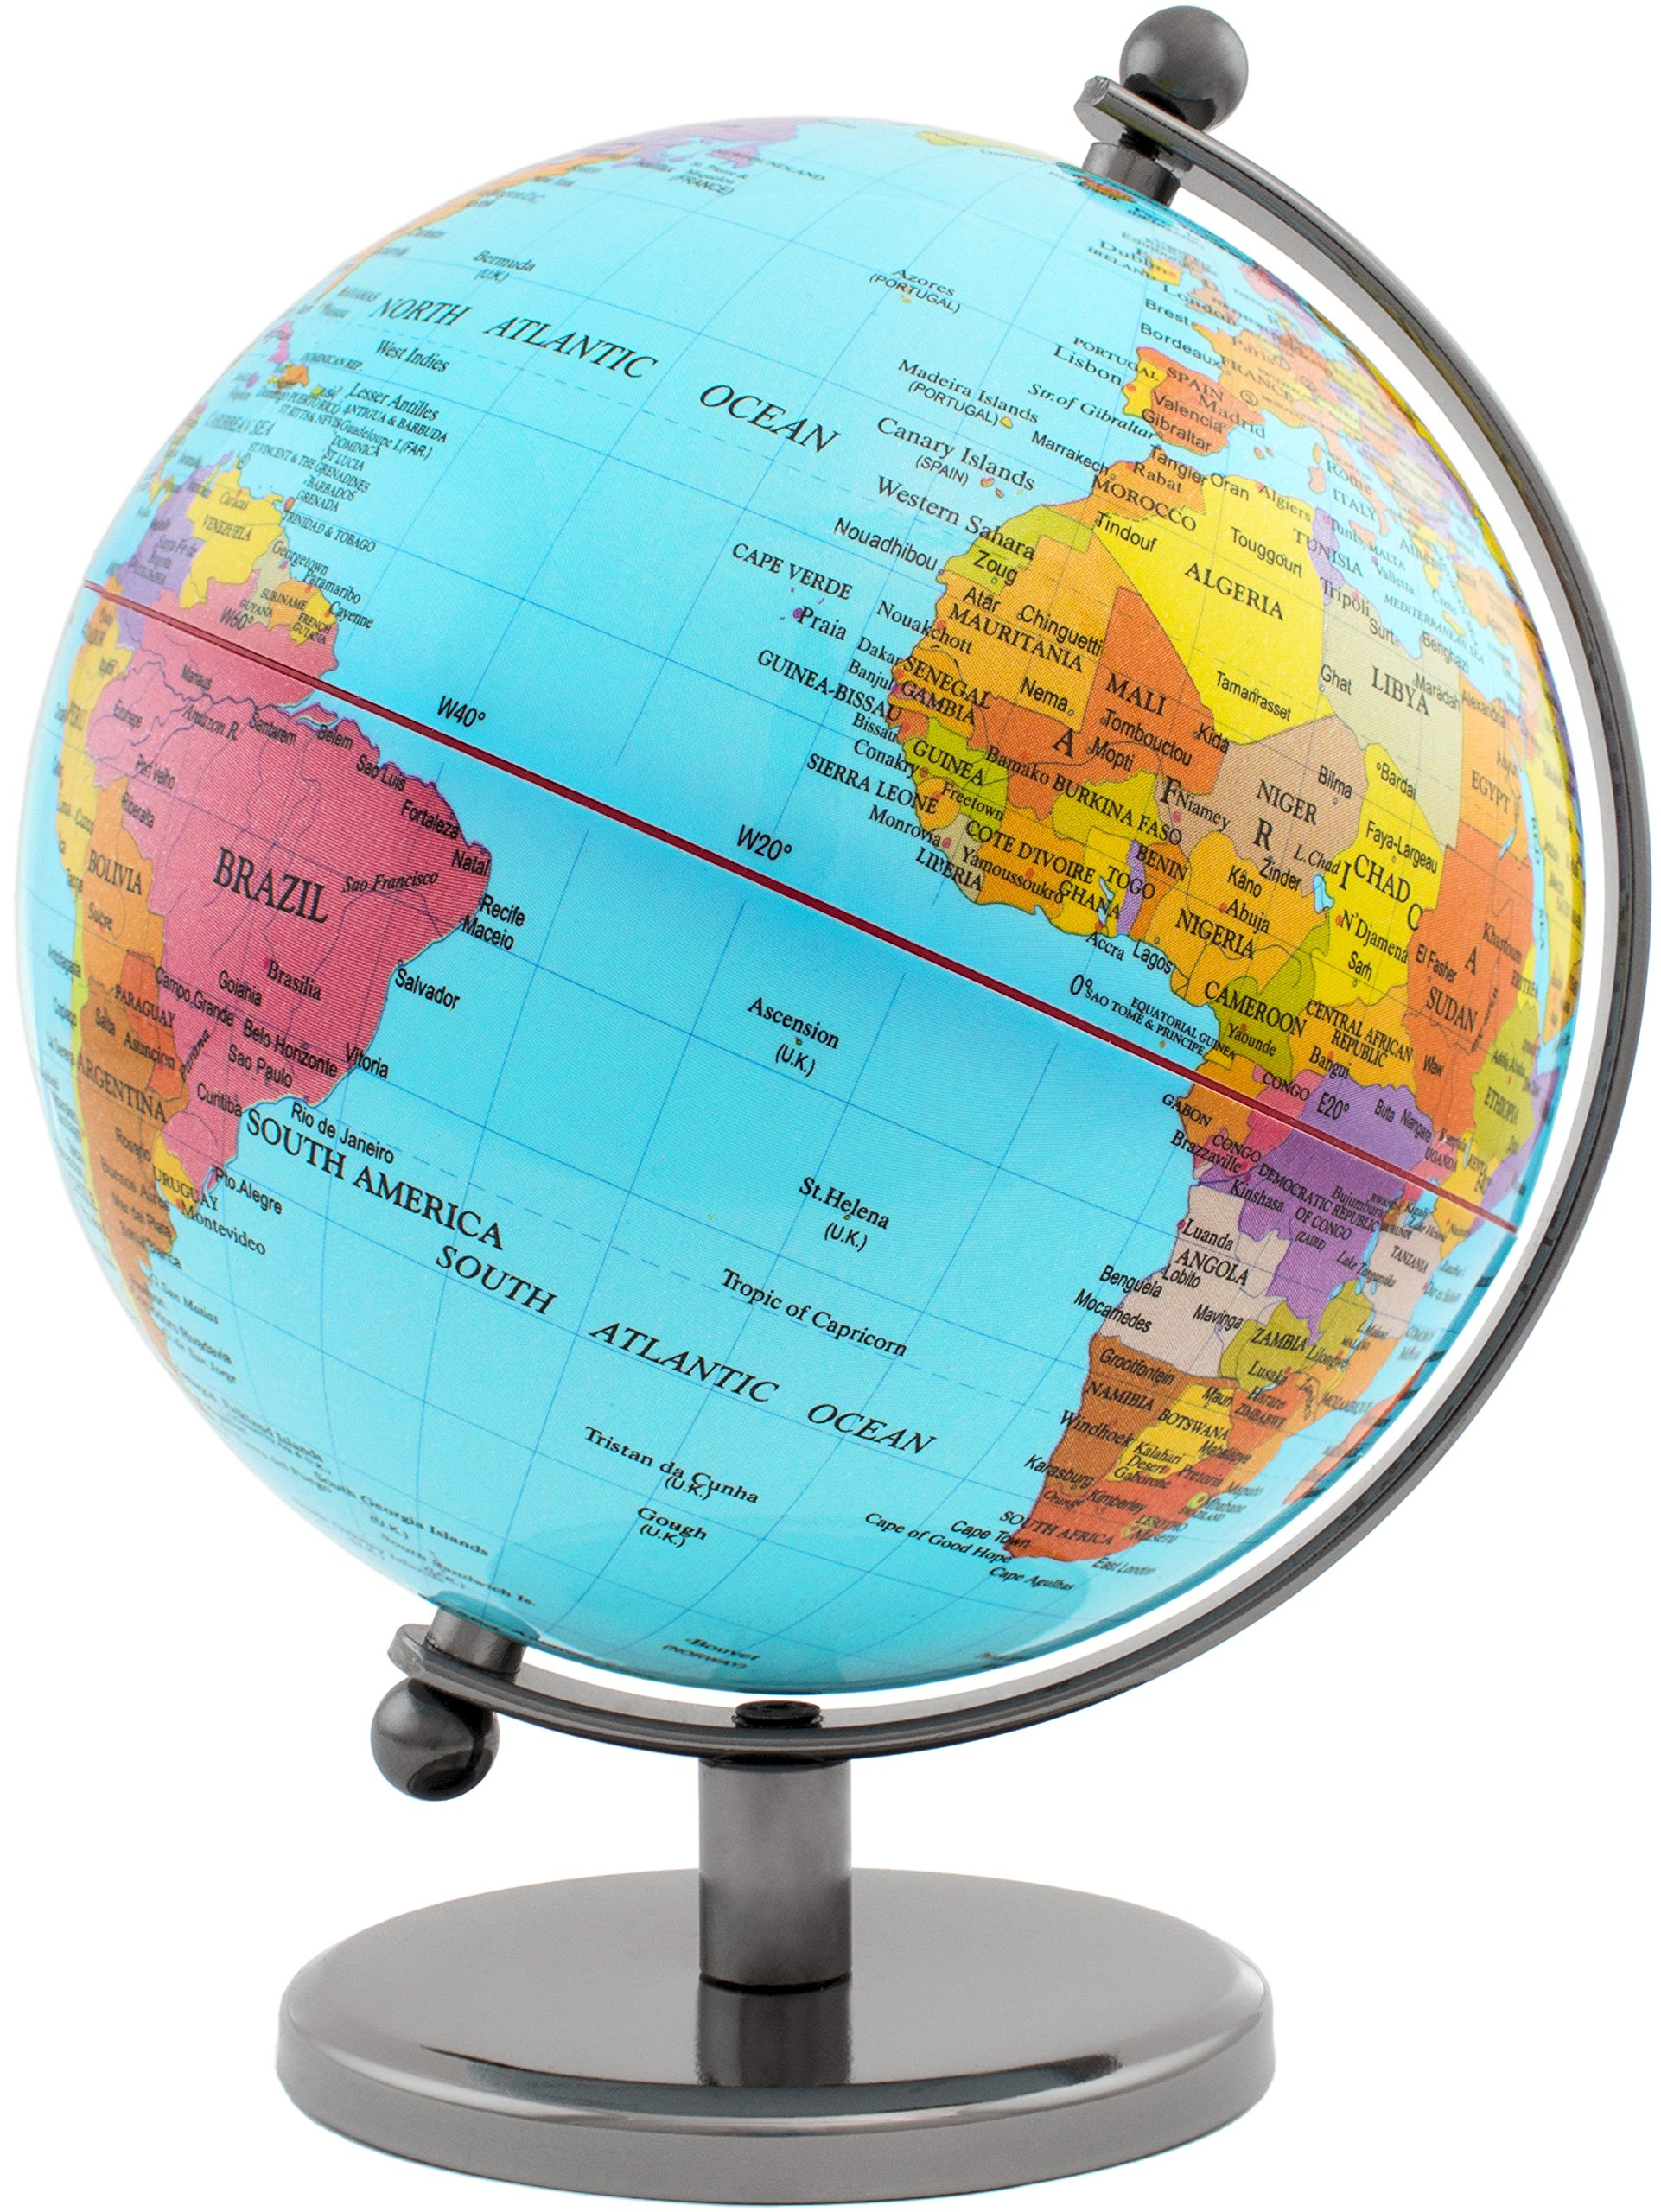 BRUBAKER Rotating Desk Globe with Metal Base - Office Decoration - Political World Globe - 7.5 inches tall - Light Blue